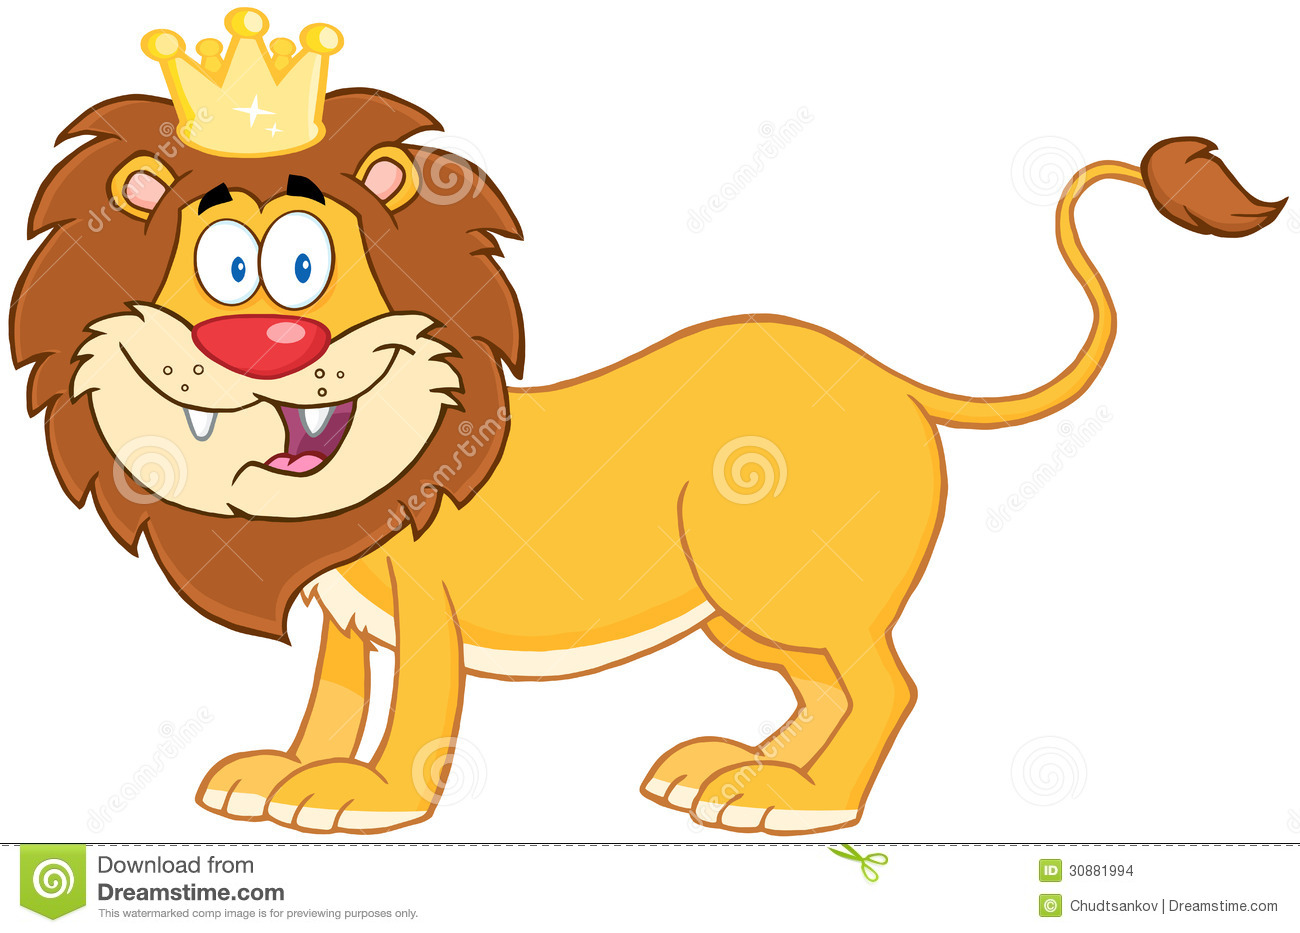 Cartoon Characters Lion King : Lion cartoon characters imgkid the image kid